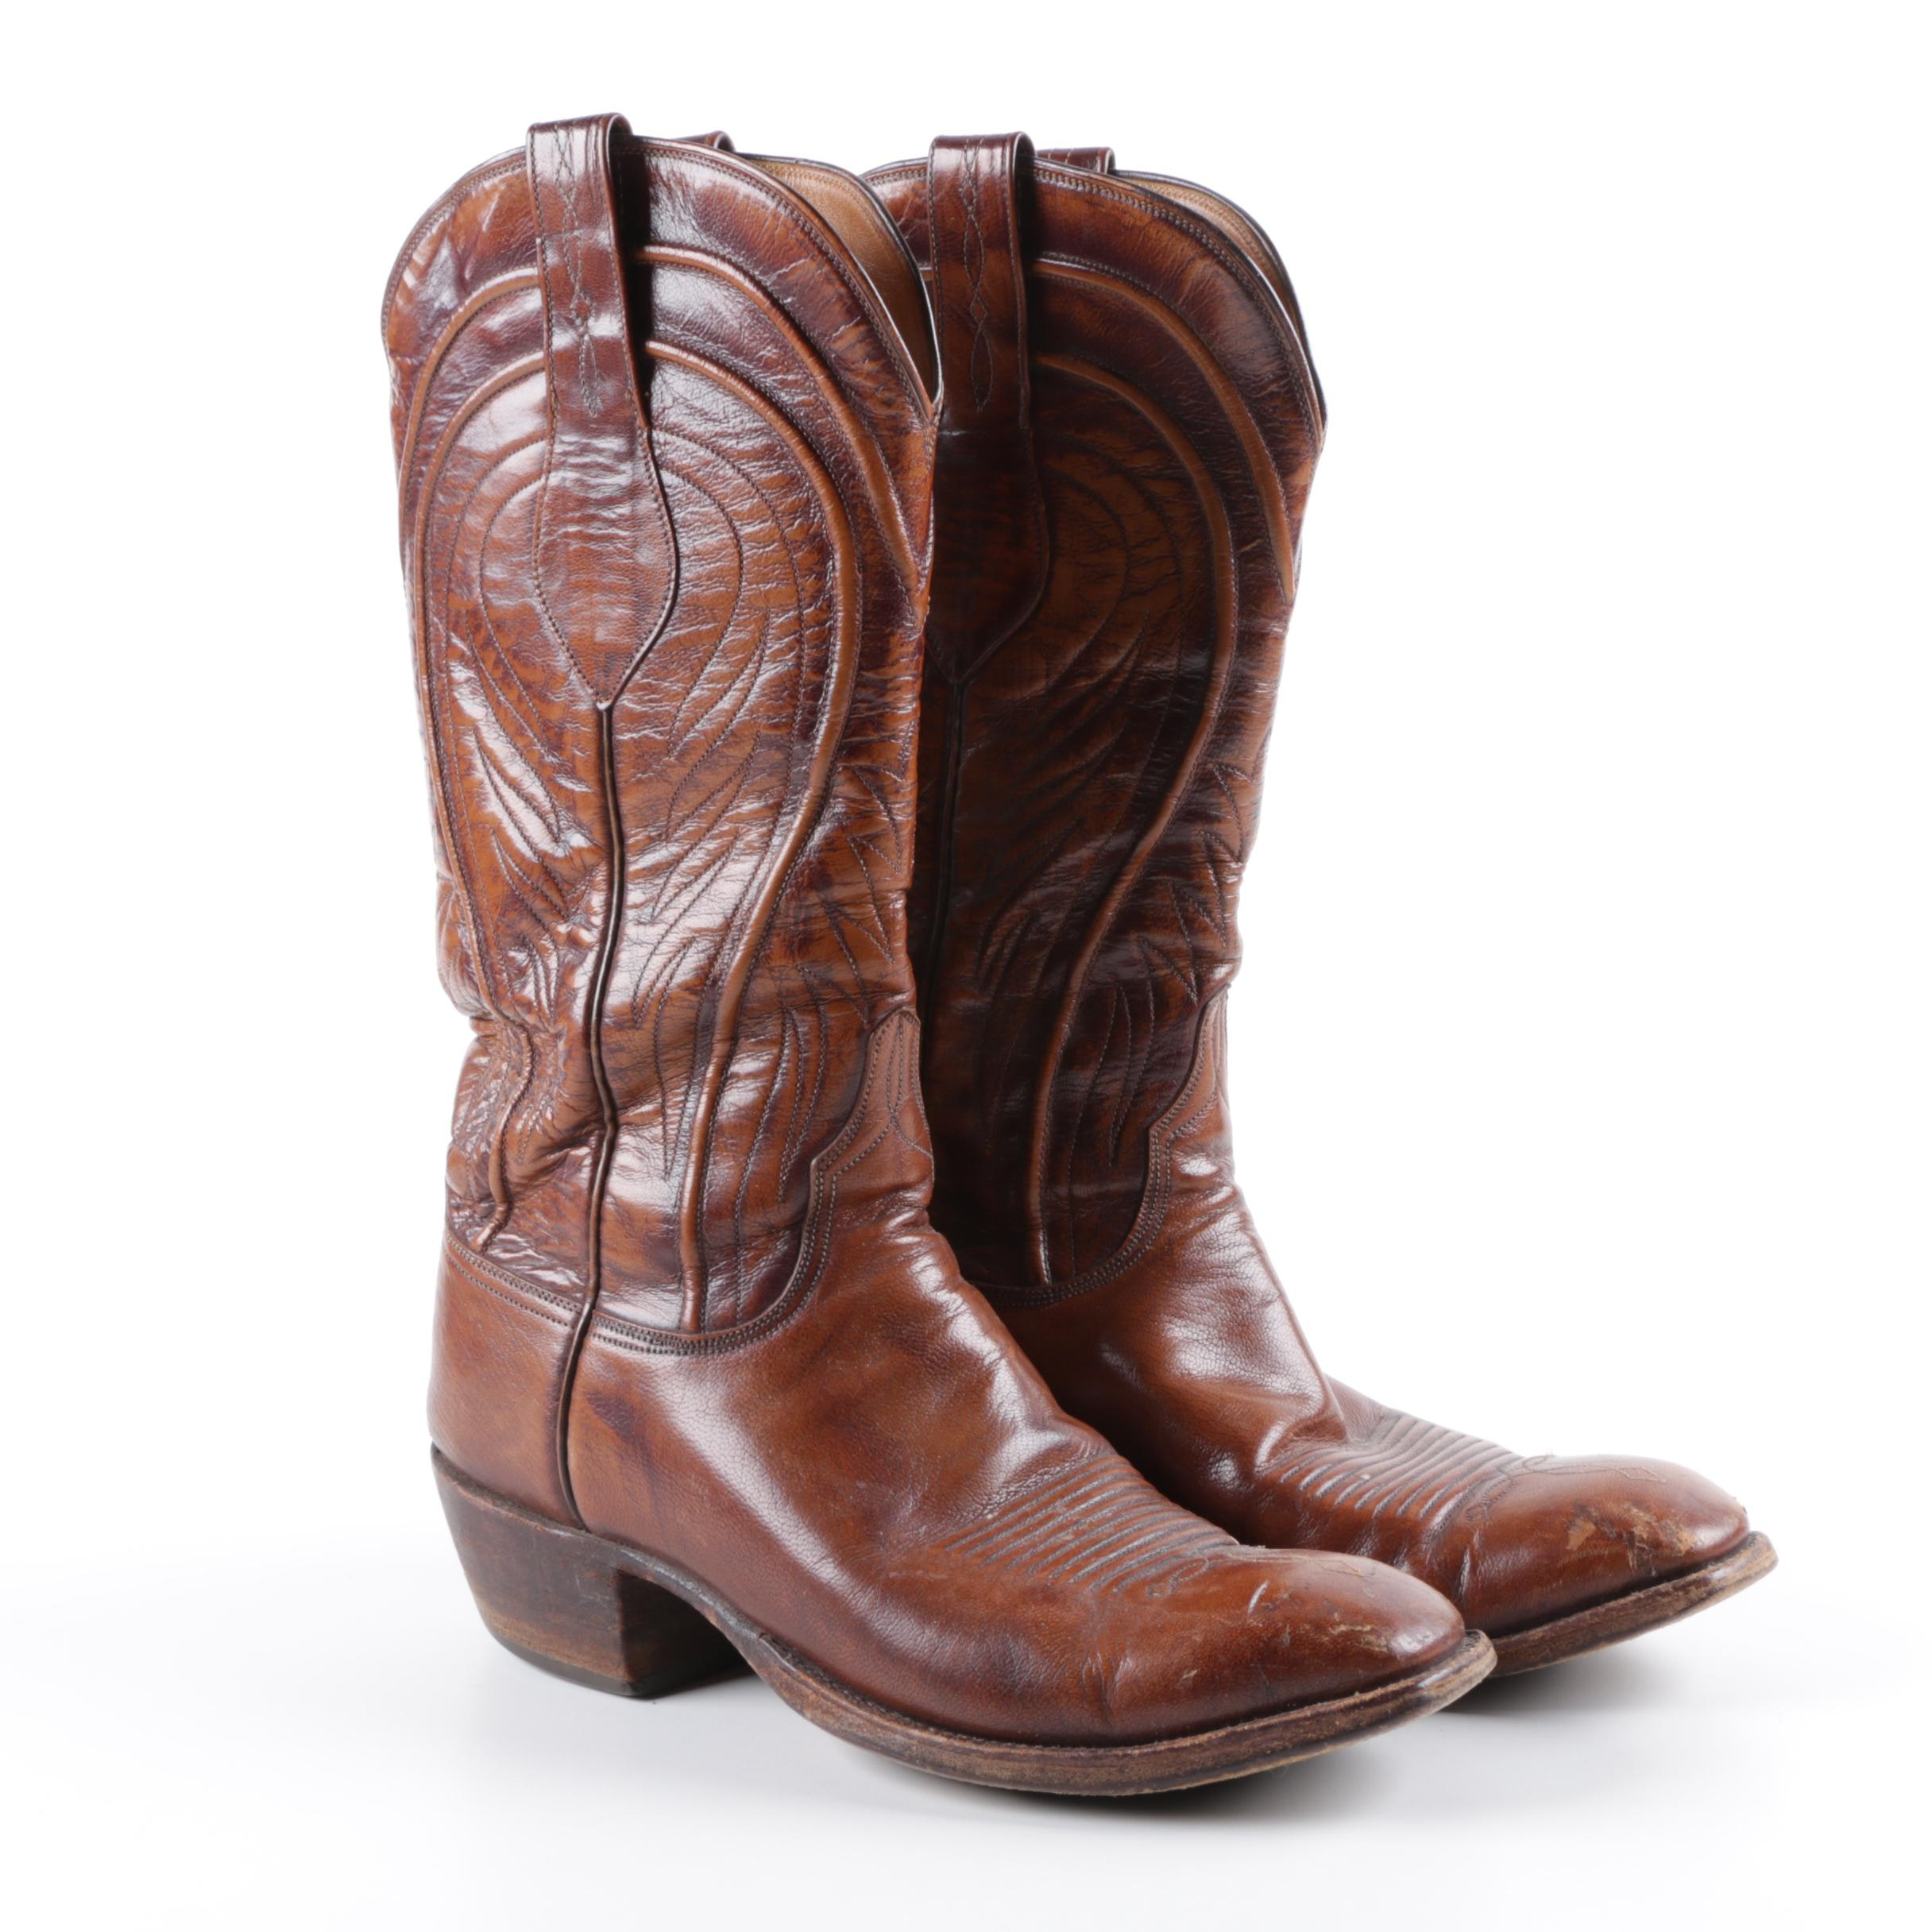 Men's Vintage Lucchese Brown Leather Cowboy Boots